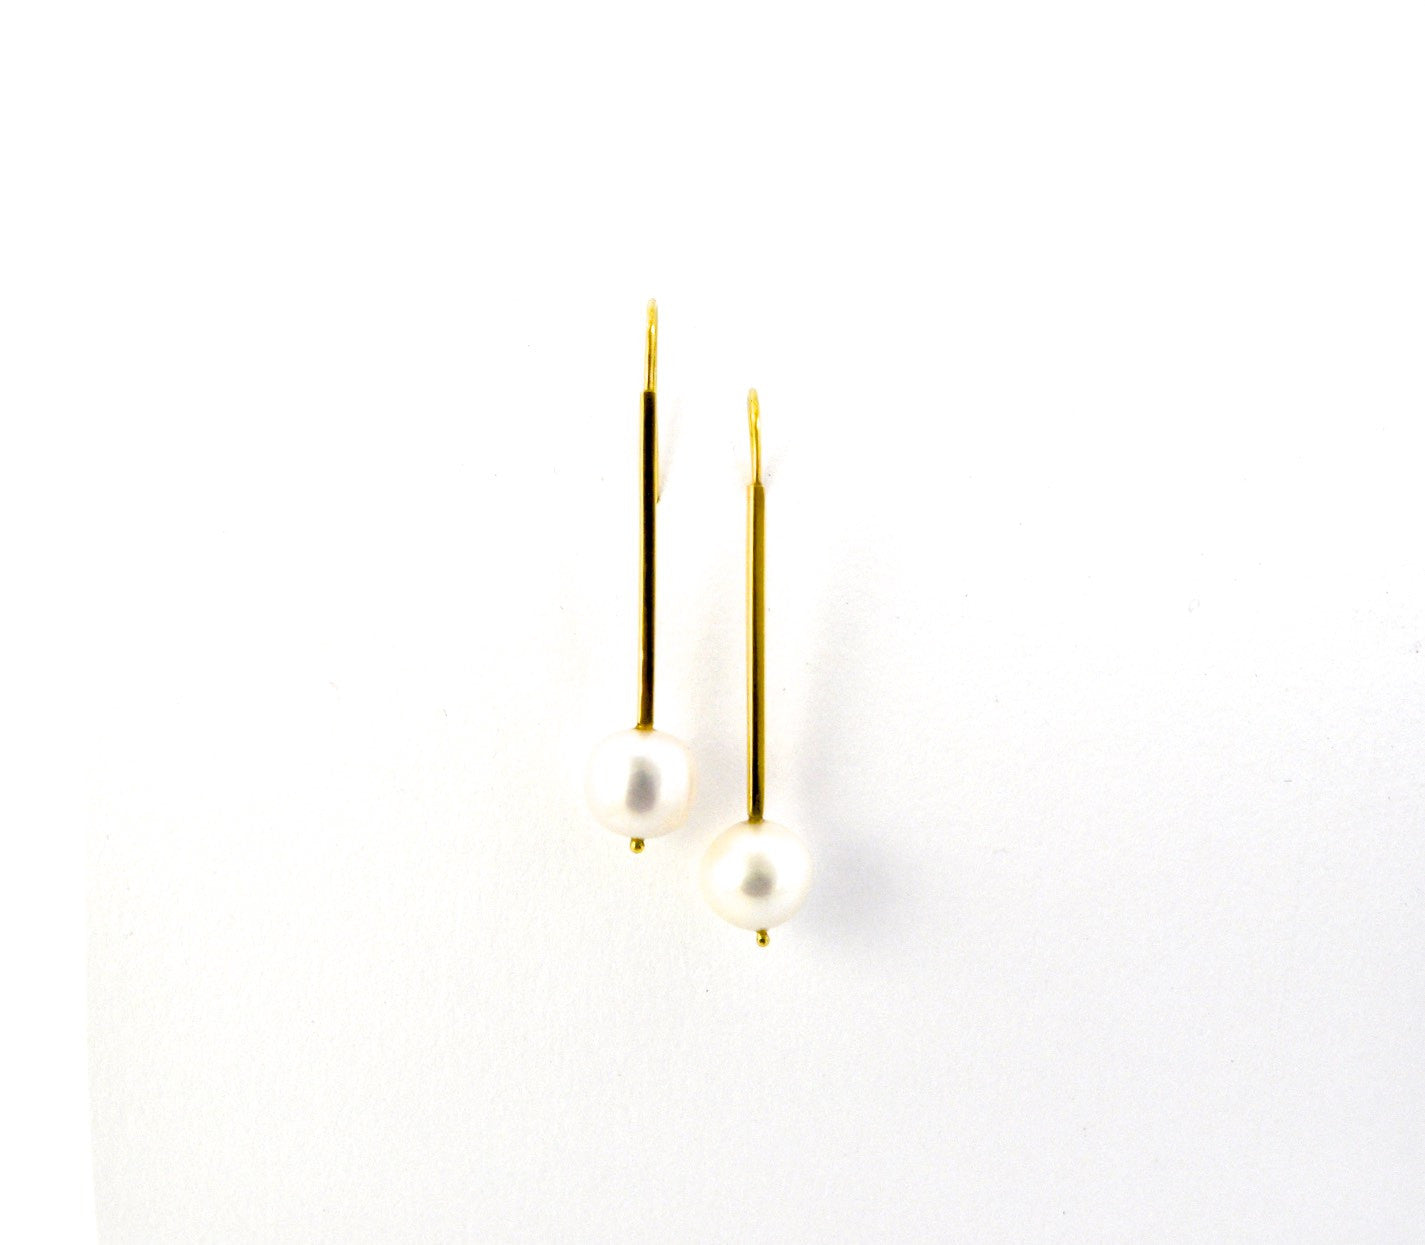 earrings / gold 18k bar with suspended pearls